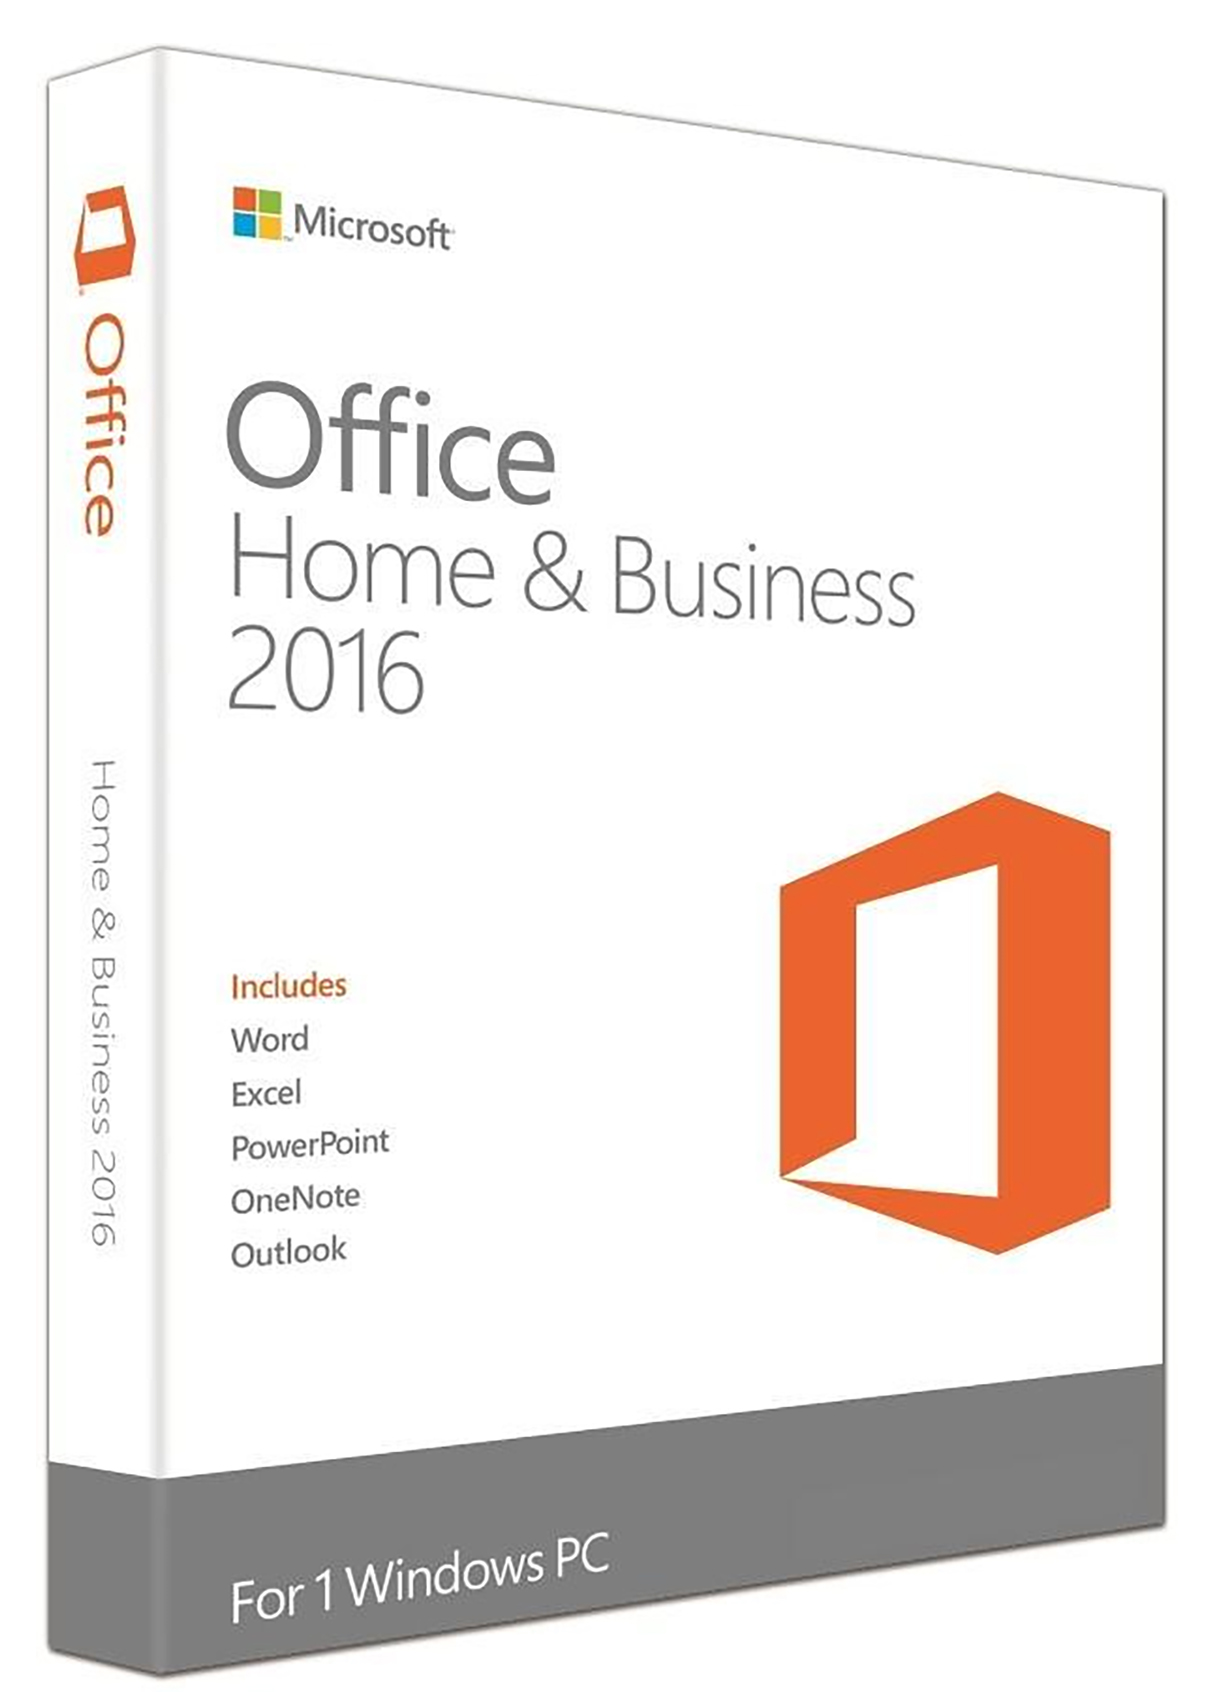 Harga Jual Microsoft Office Home and Business 2016 for